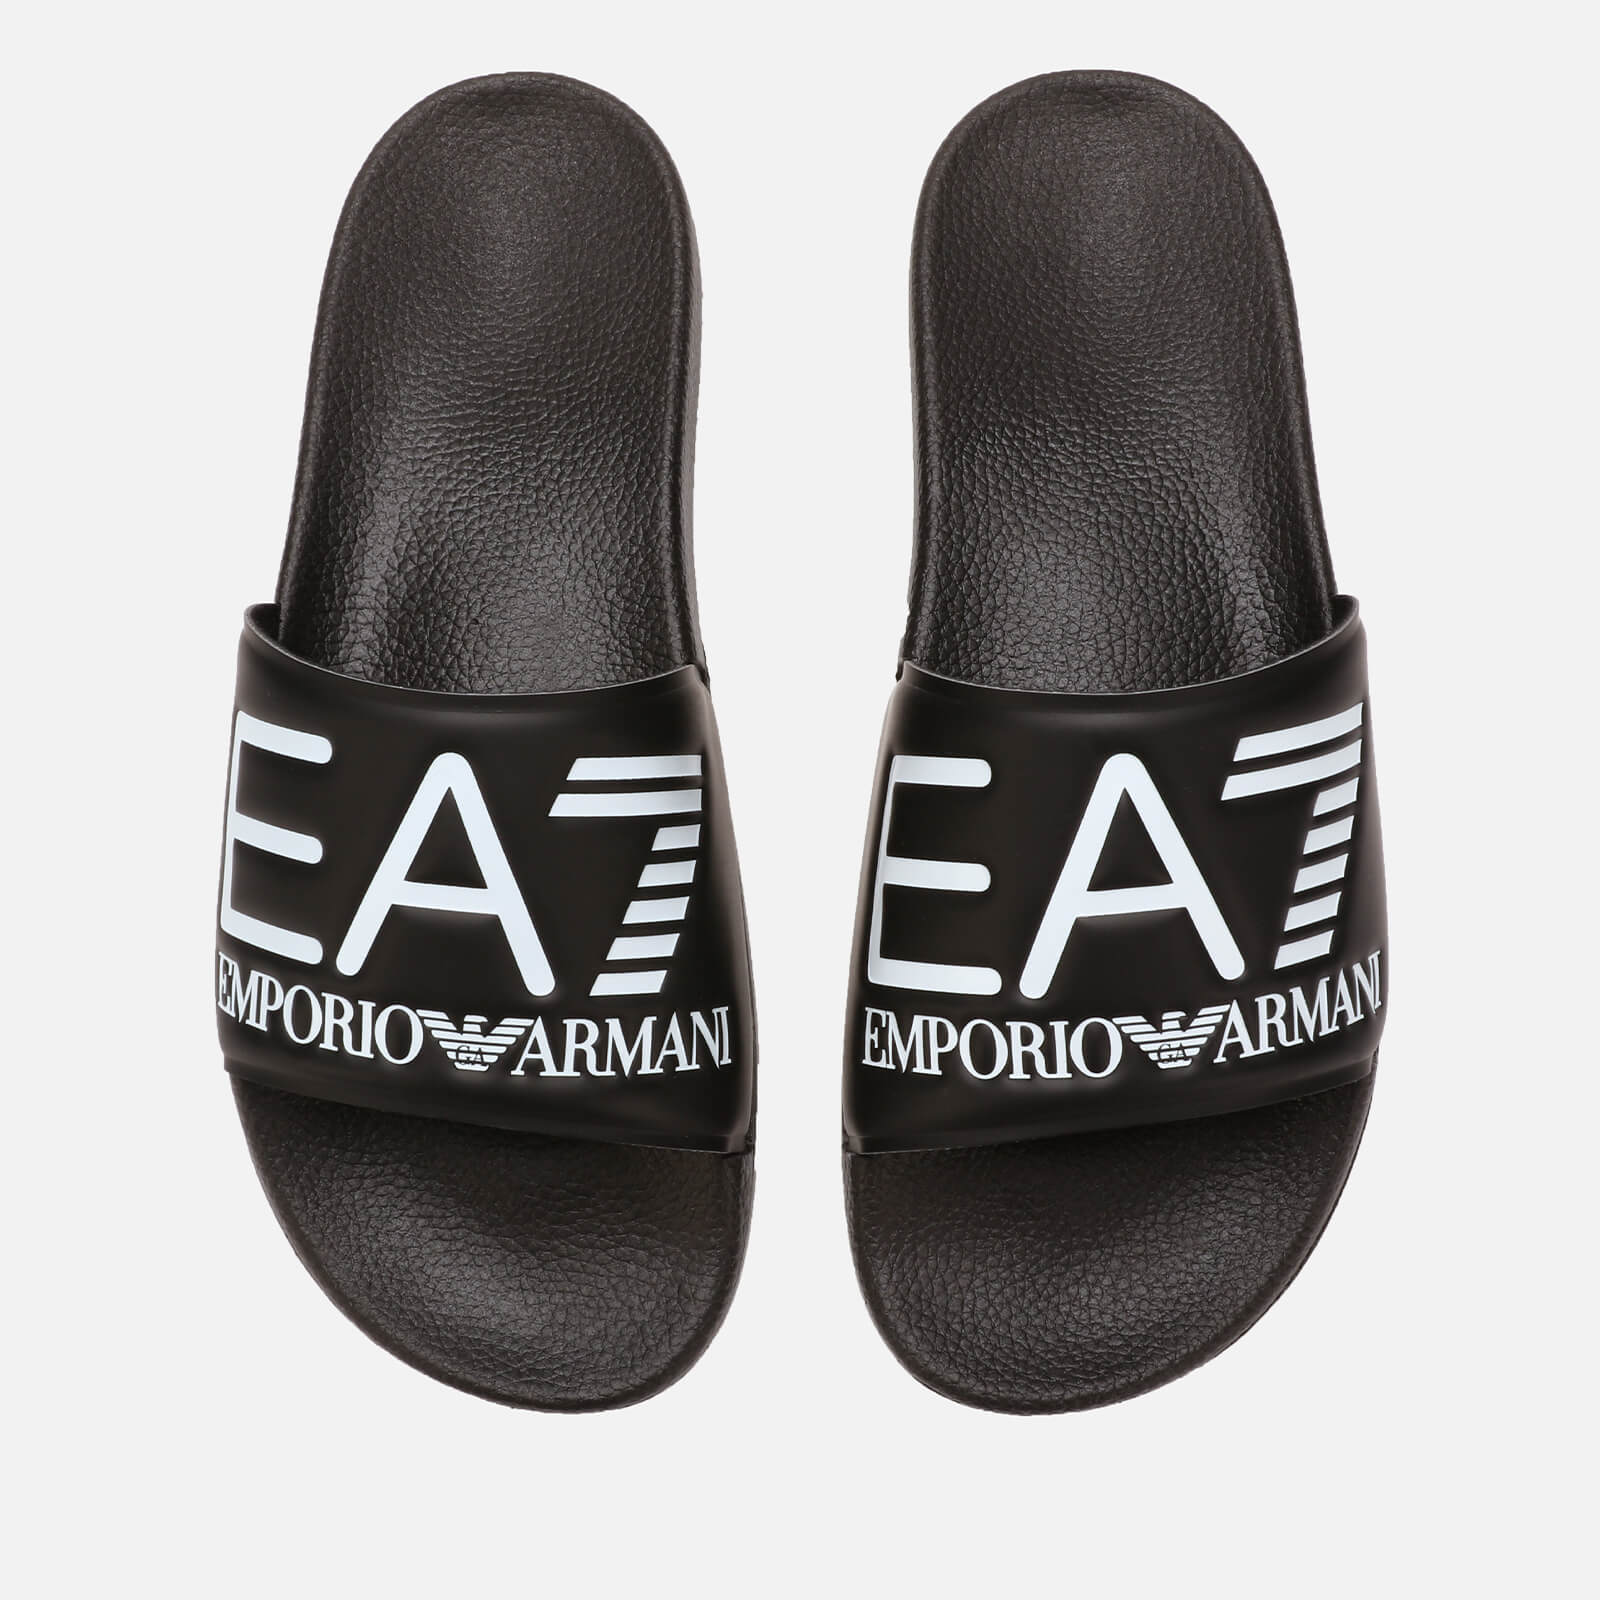 96c8c1301 Emporio Armani EA7 Sea World Slide Sandals - Black Mens Footwear ...